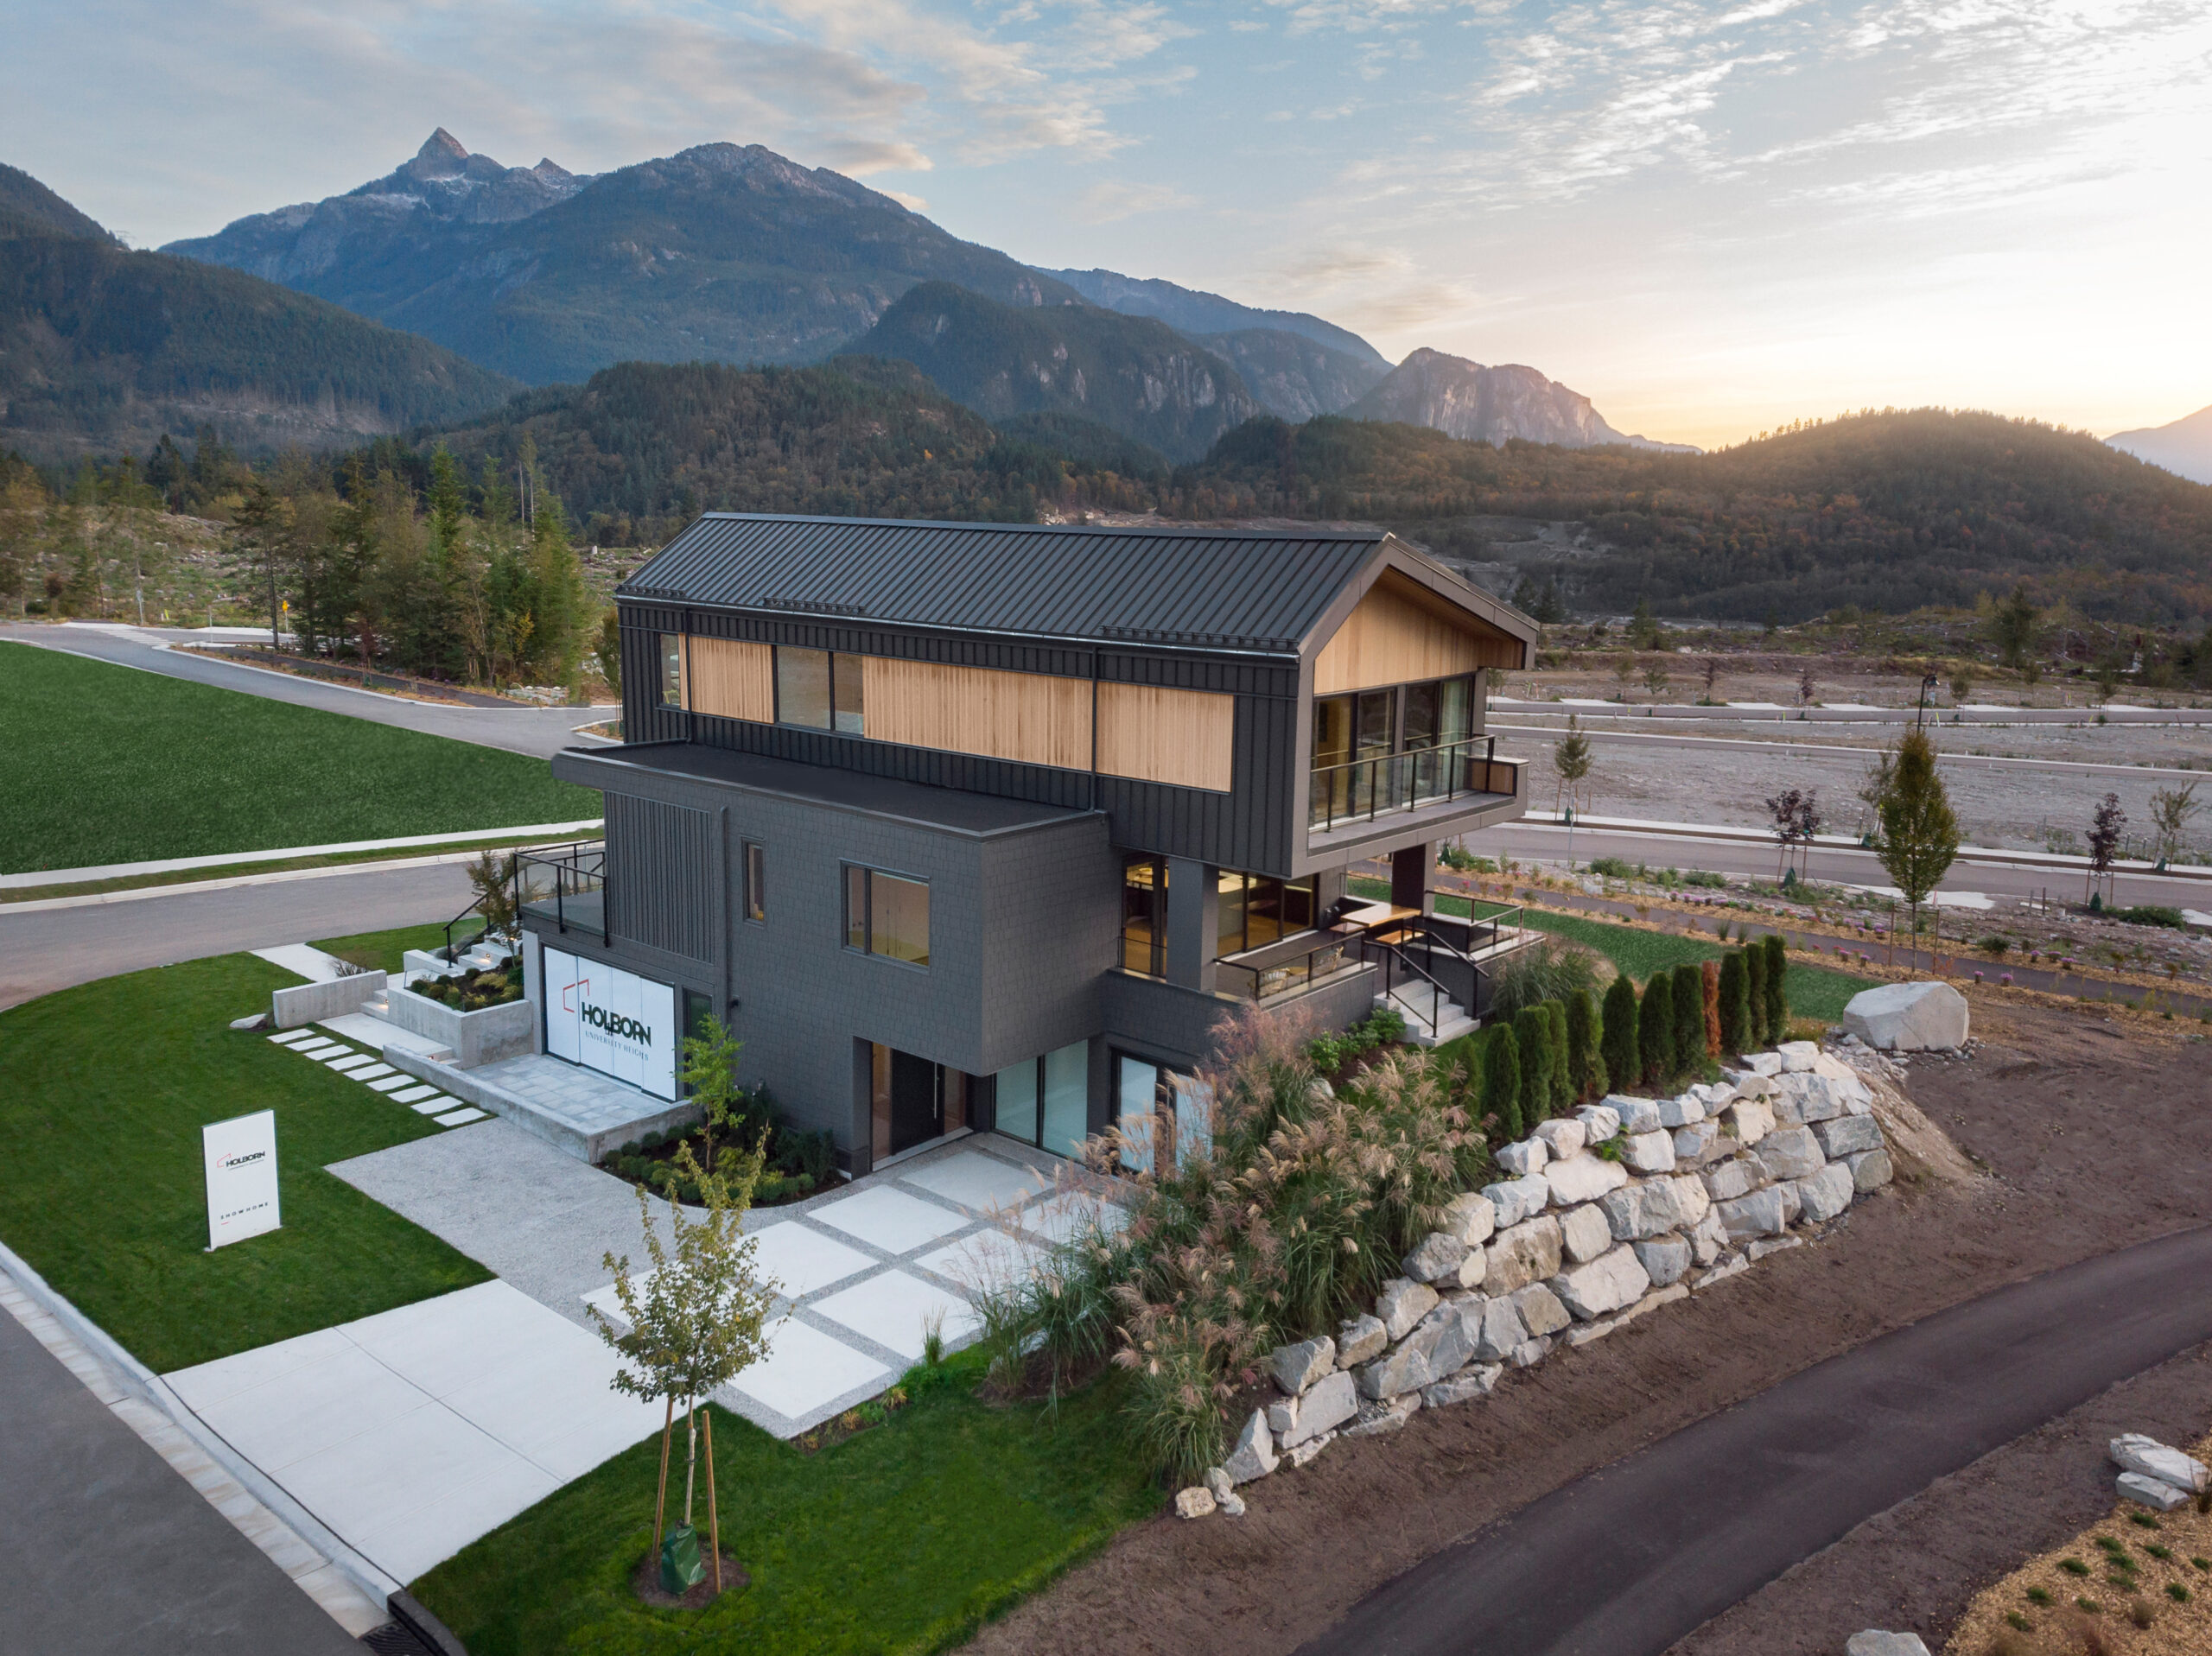 Aerial View of Dark Exterior Show Home and Mountain Range in background